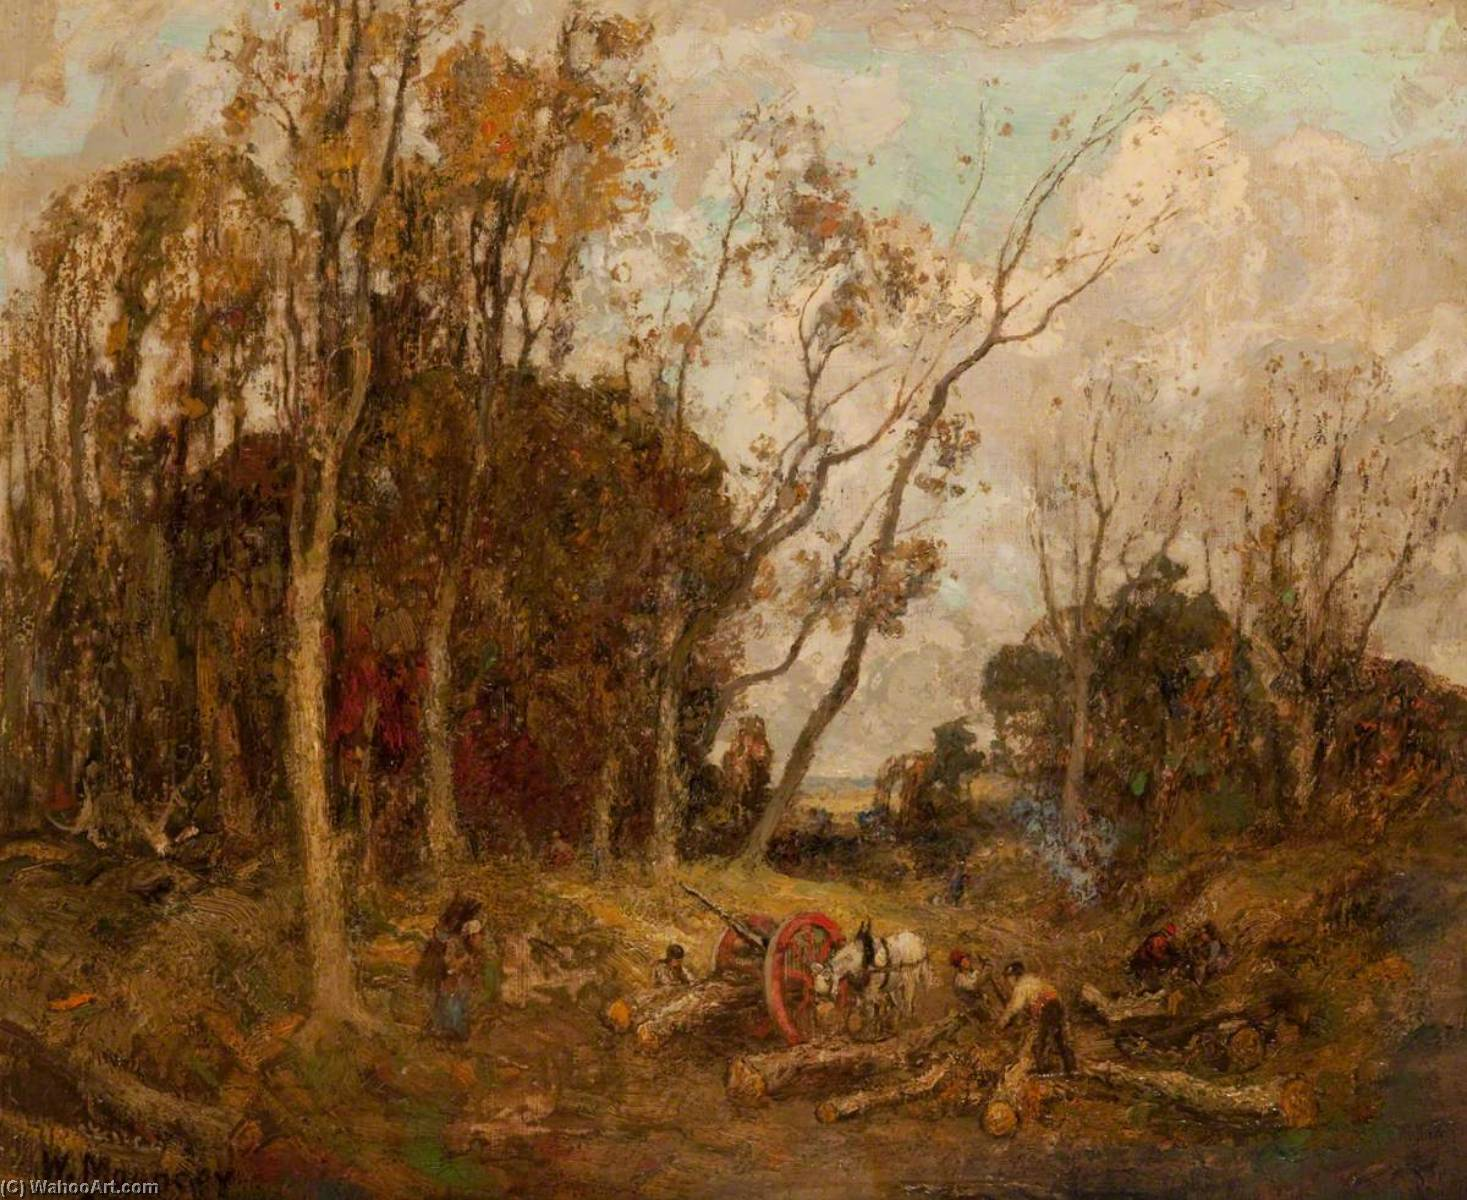 Carting Timber, Oil On Canvas by William Mouncey